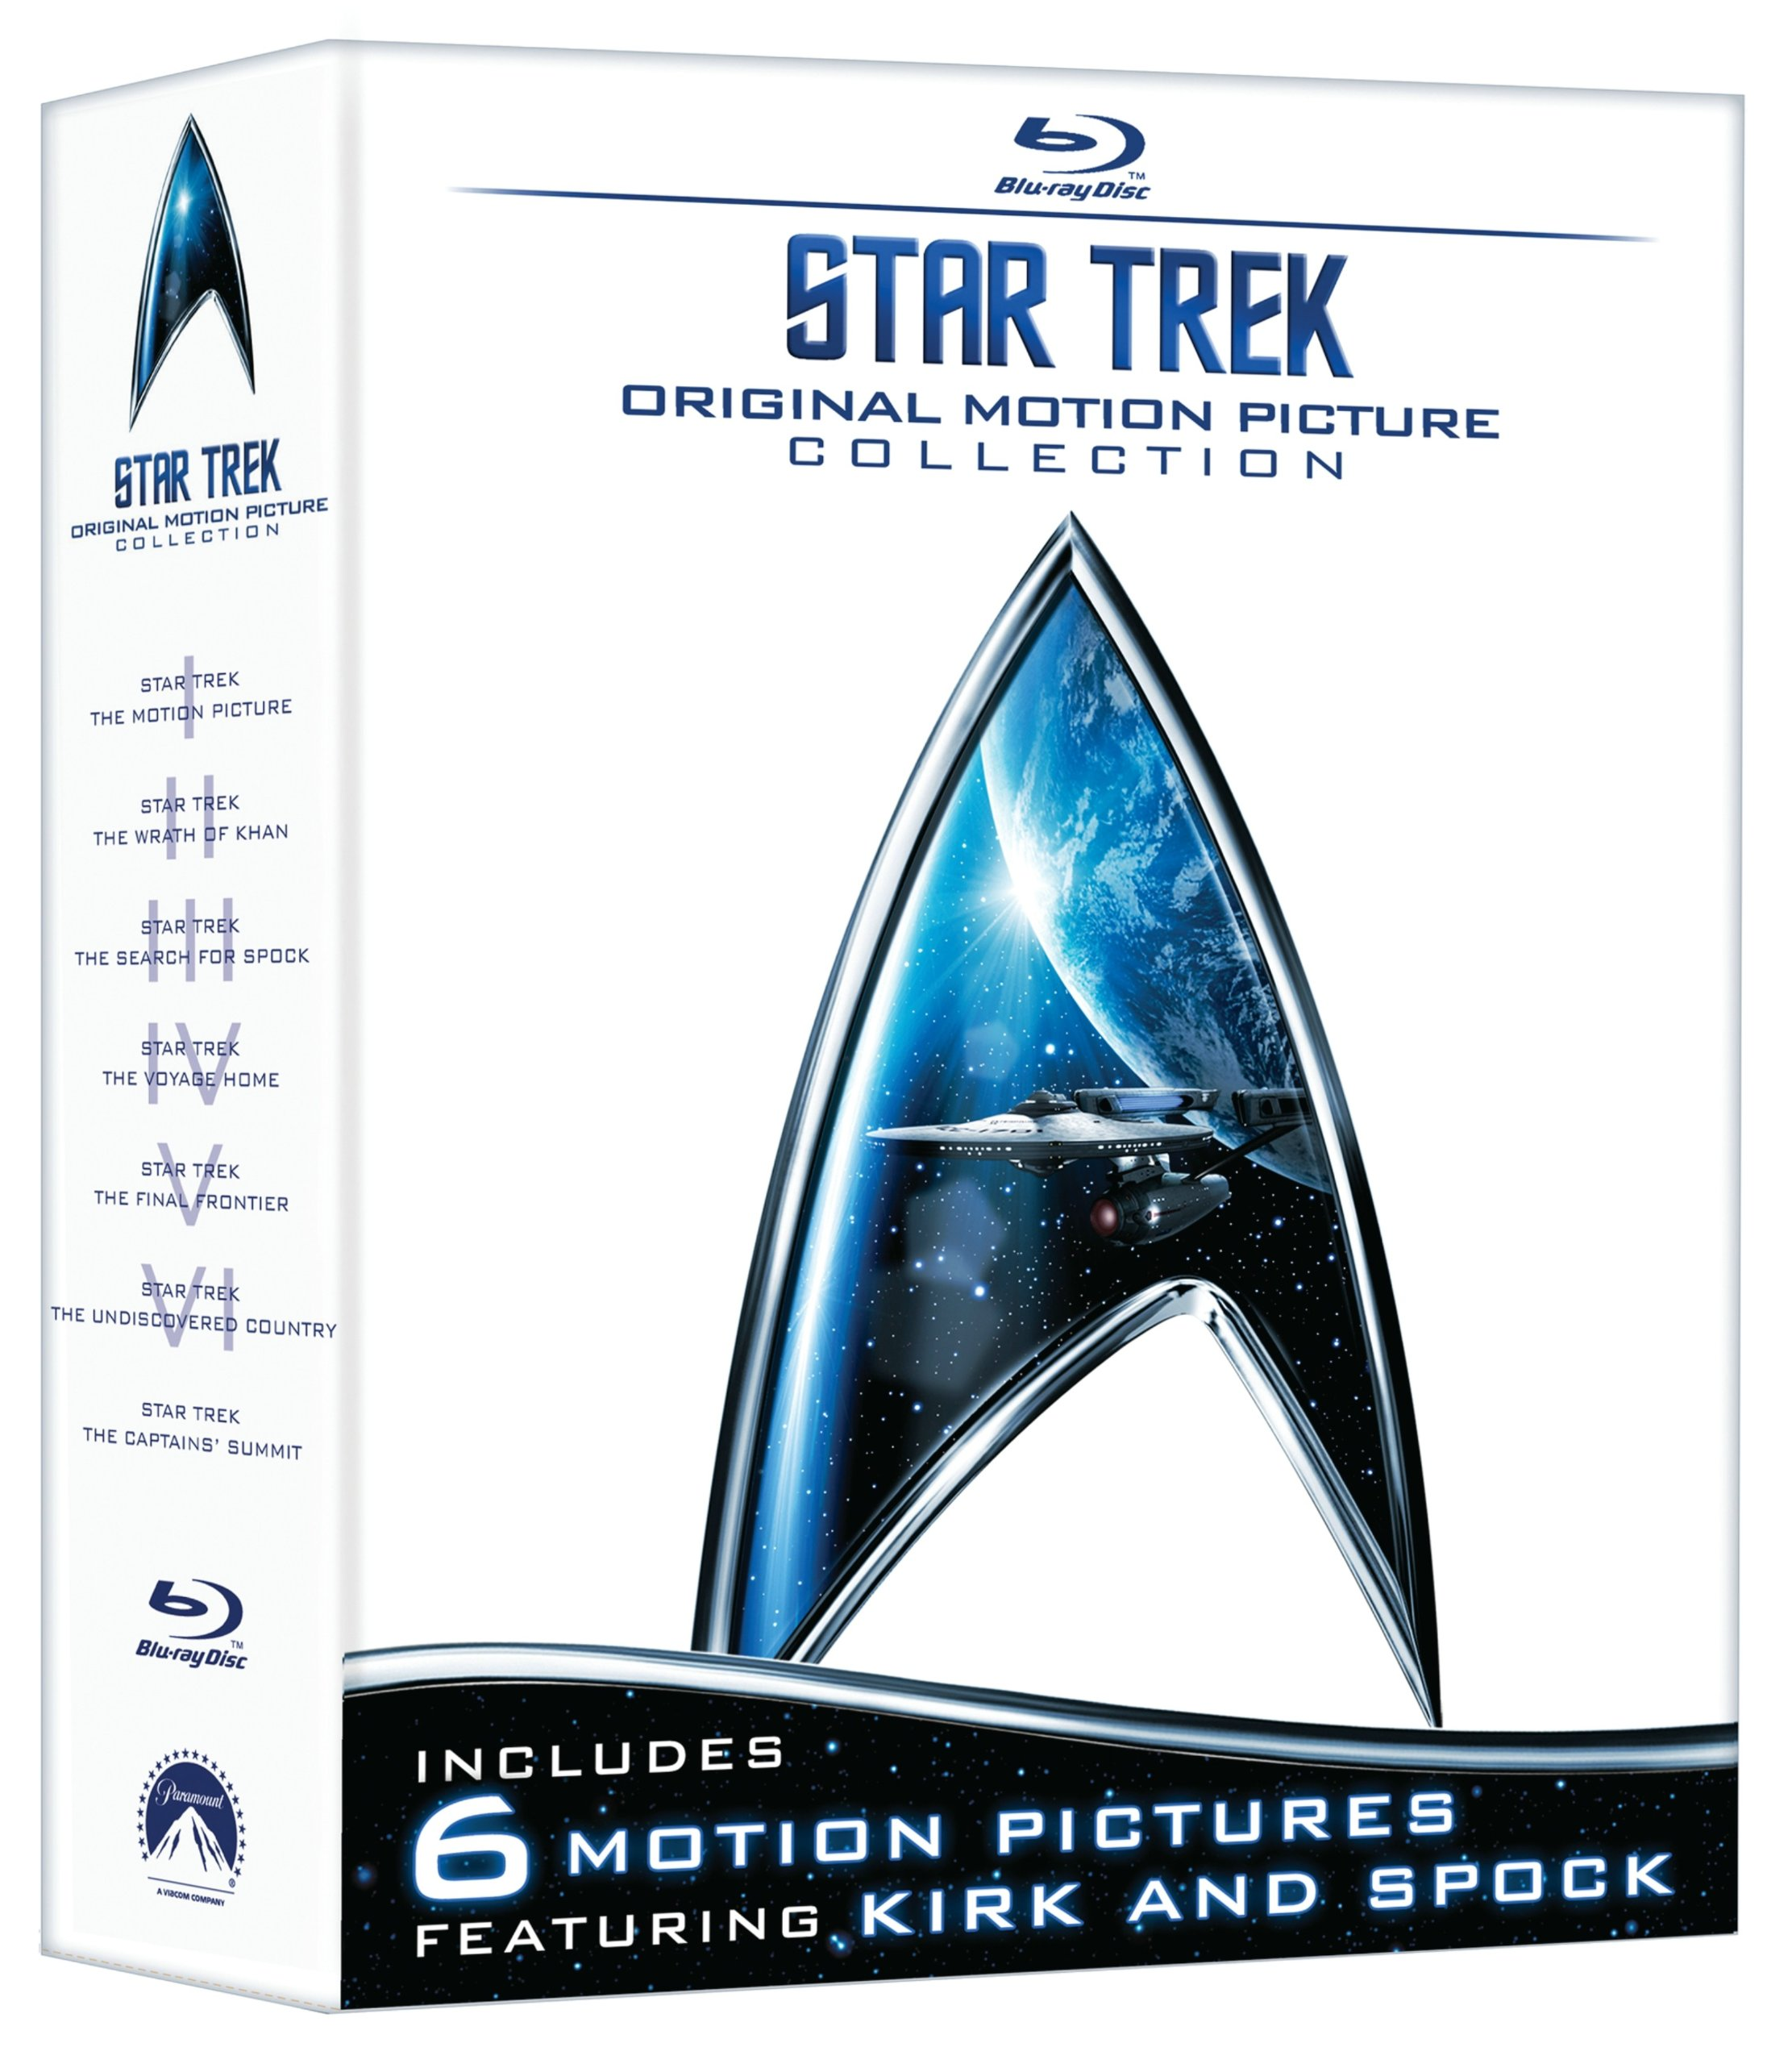 Blu-ray : Star Trek: Original Motion Picture Collection (Bonus DVD, Gift Set, Remastered, Restored, Subtitled)